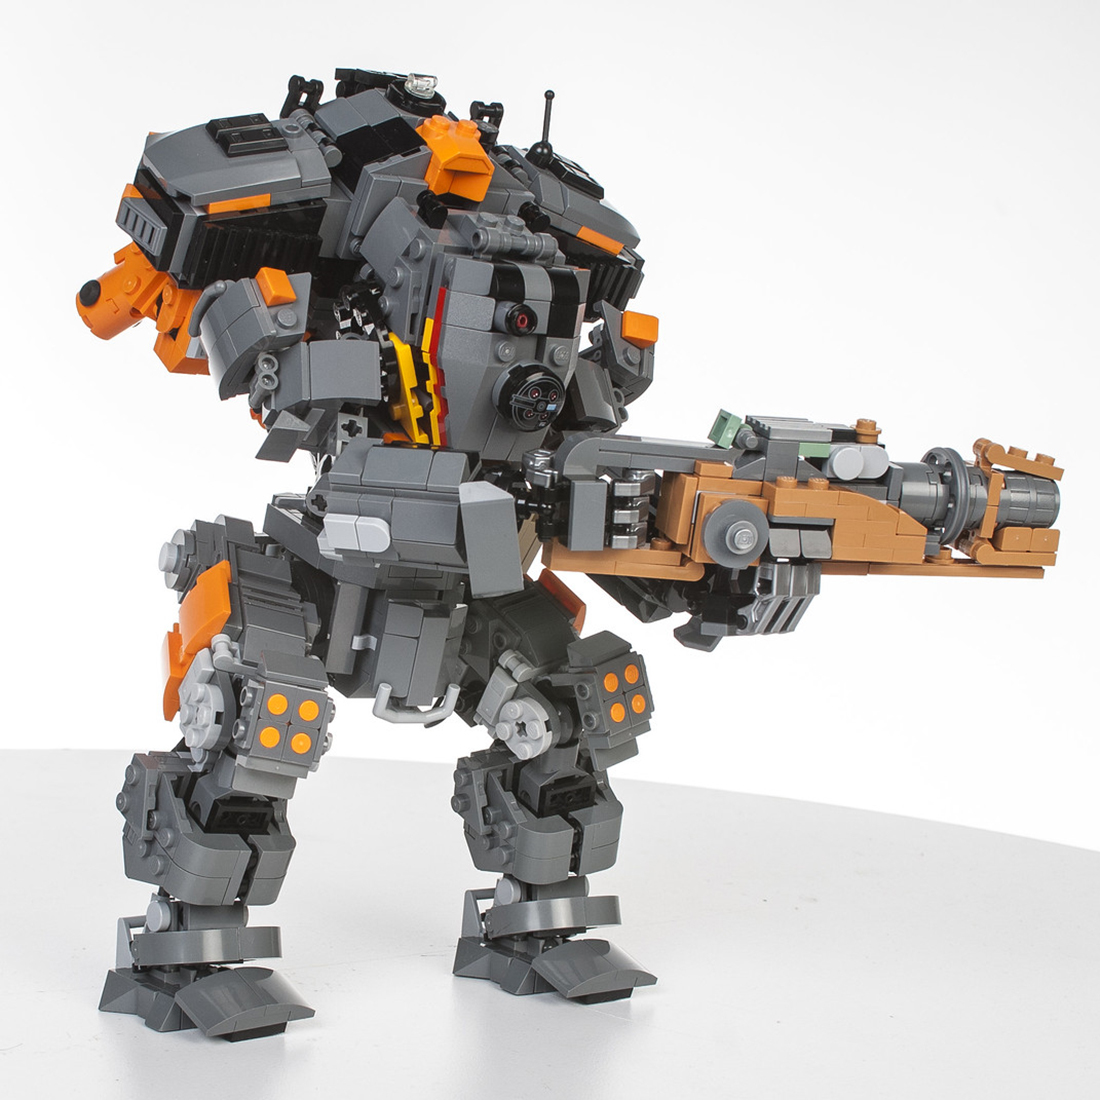 Building-Blocks Mecha Bricks Educational-Toy DIY with Blaster 1404pcs Gift-Set STEM Particle